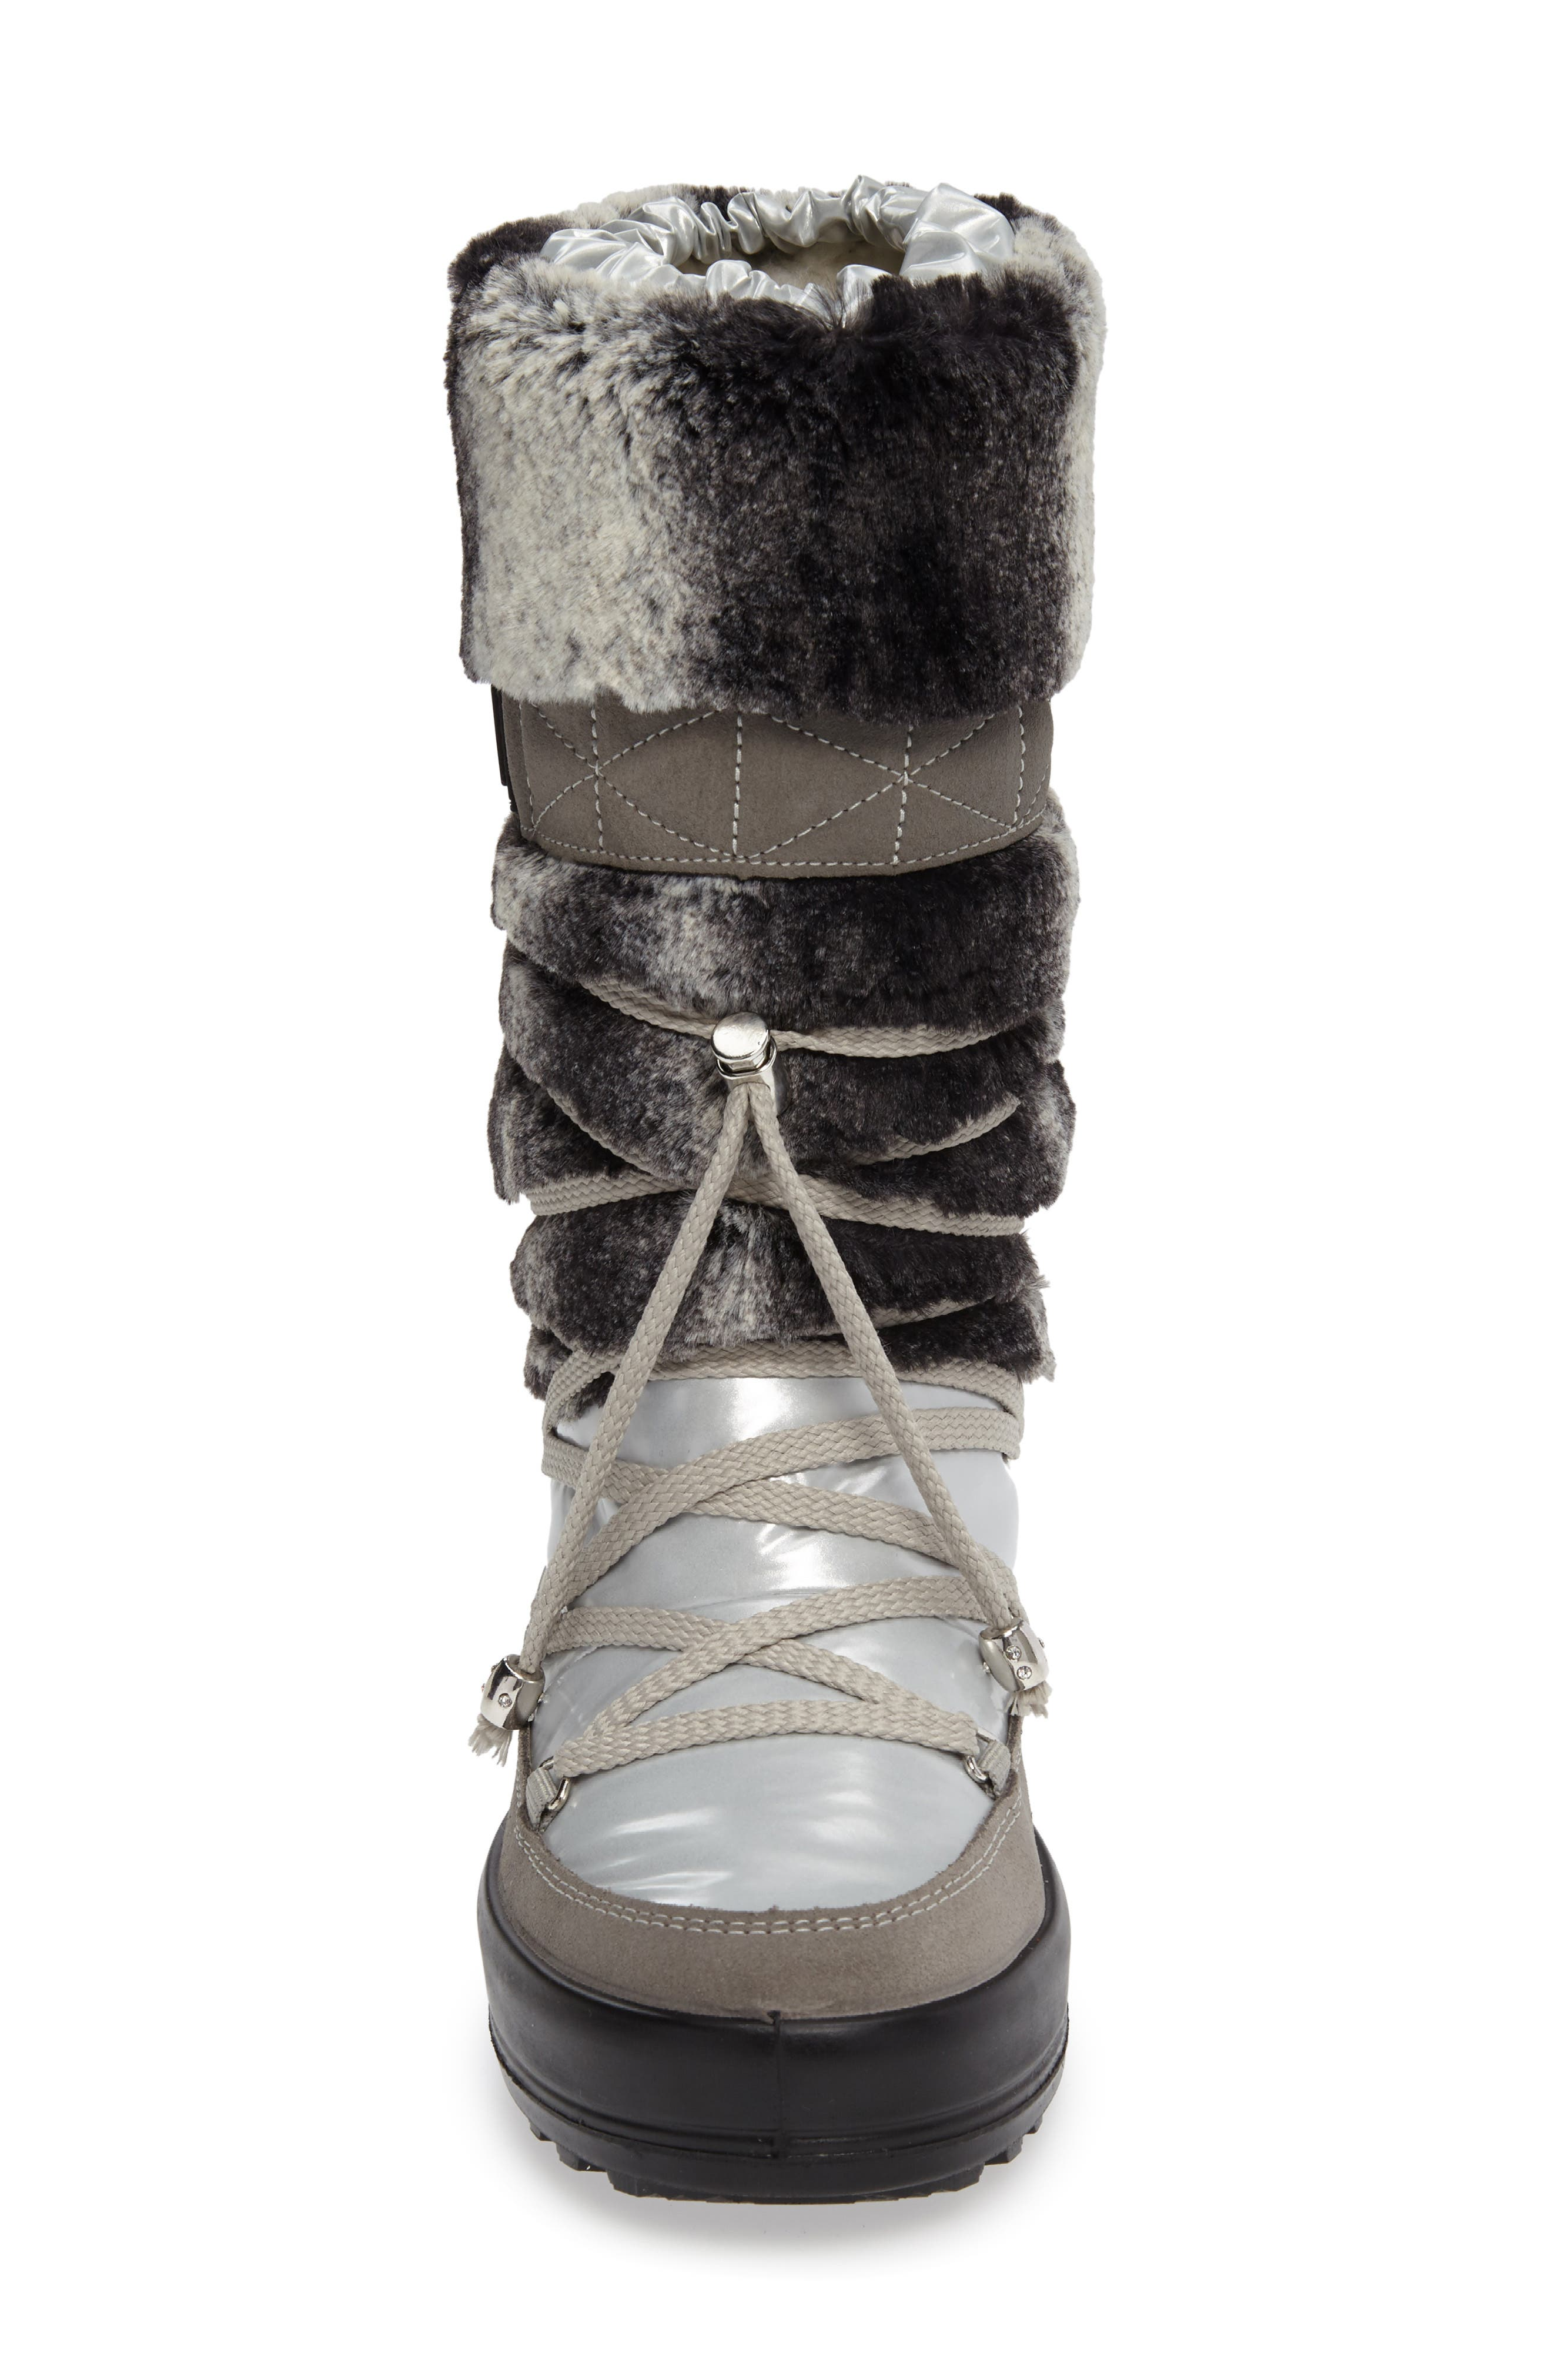 Kitzbuhel Faux Fur Waterproof Quilted Boot,                             Alternate thumbnail 3, color,                             Silver/ Lapin